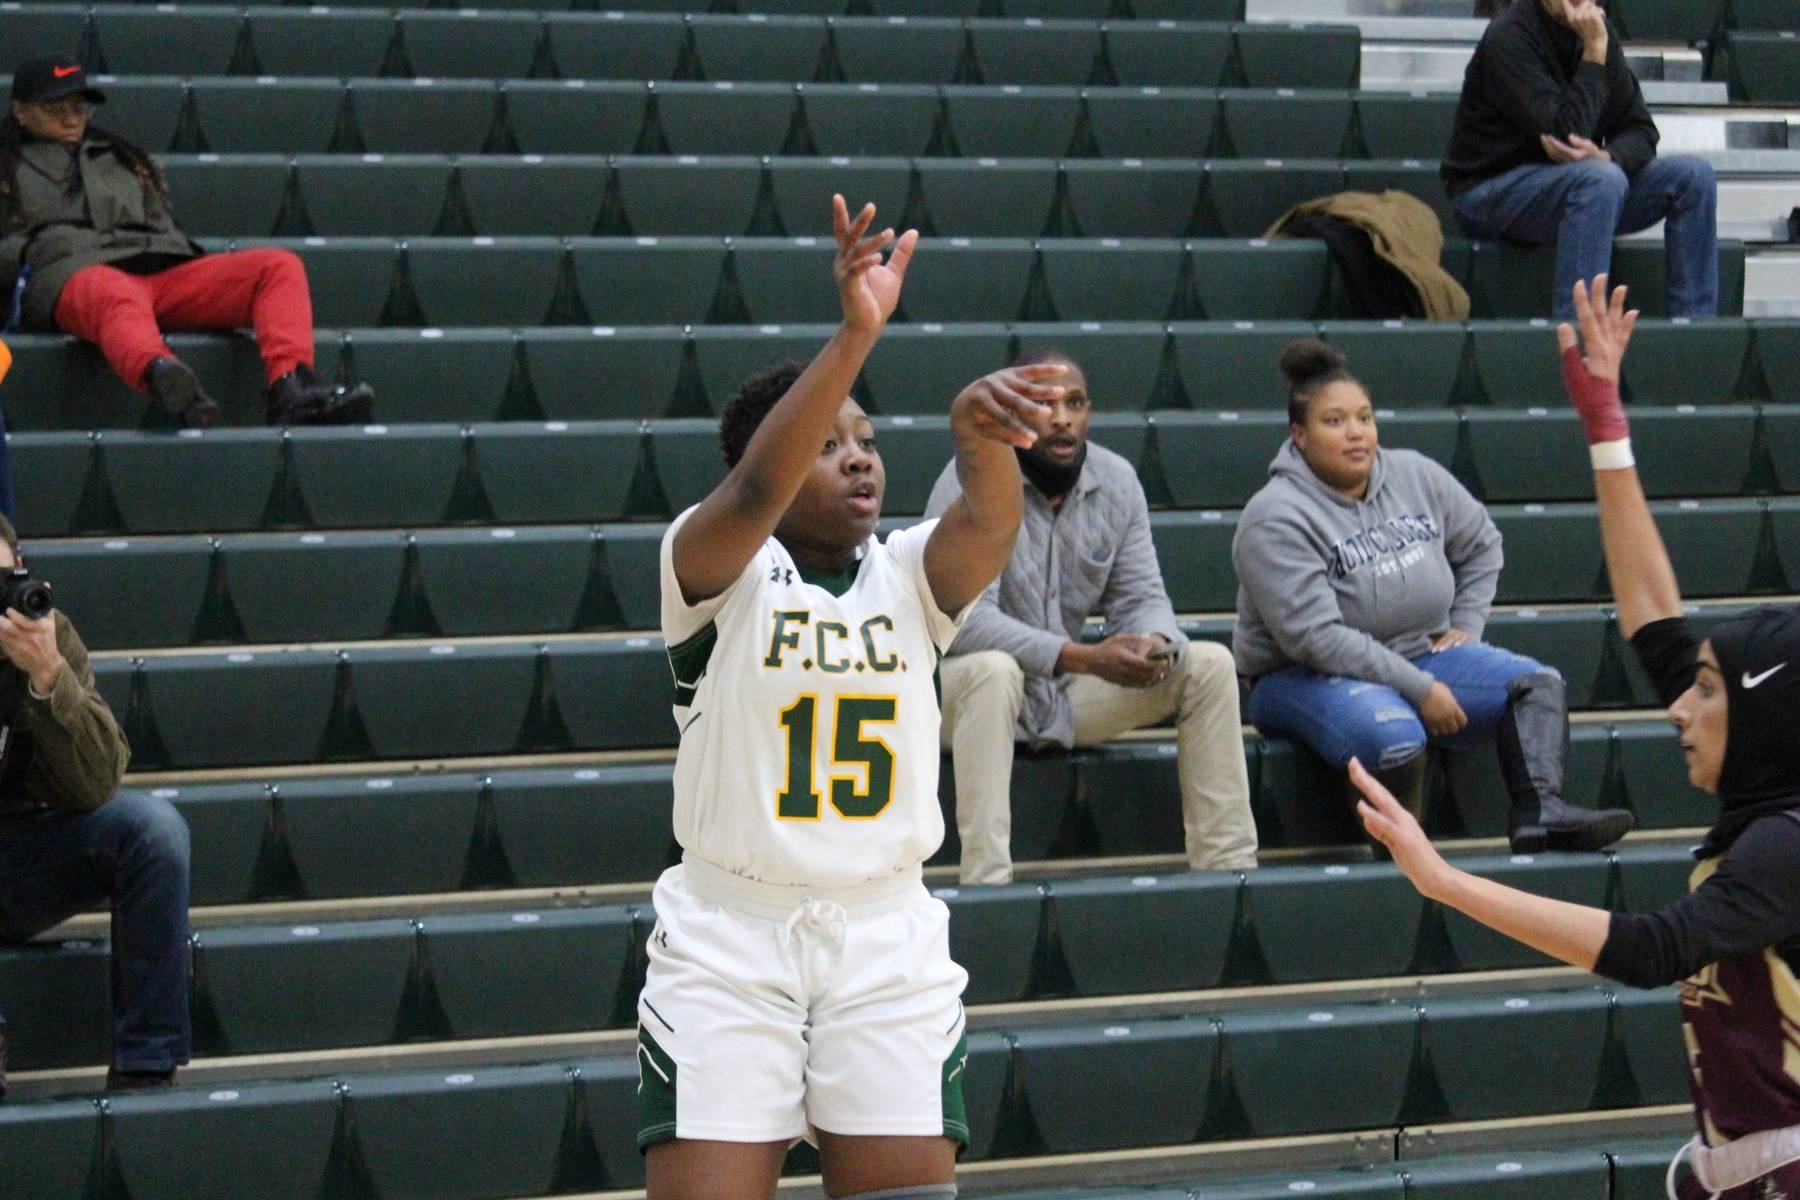 Women's Basketball Comes From Behind To Win Against Hawks